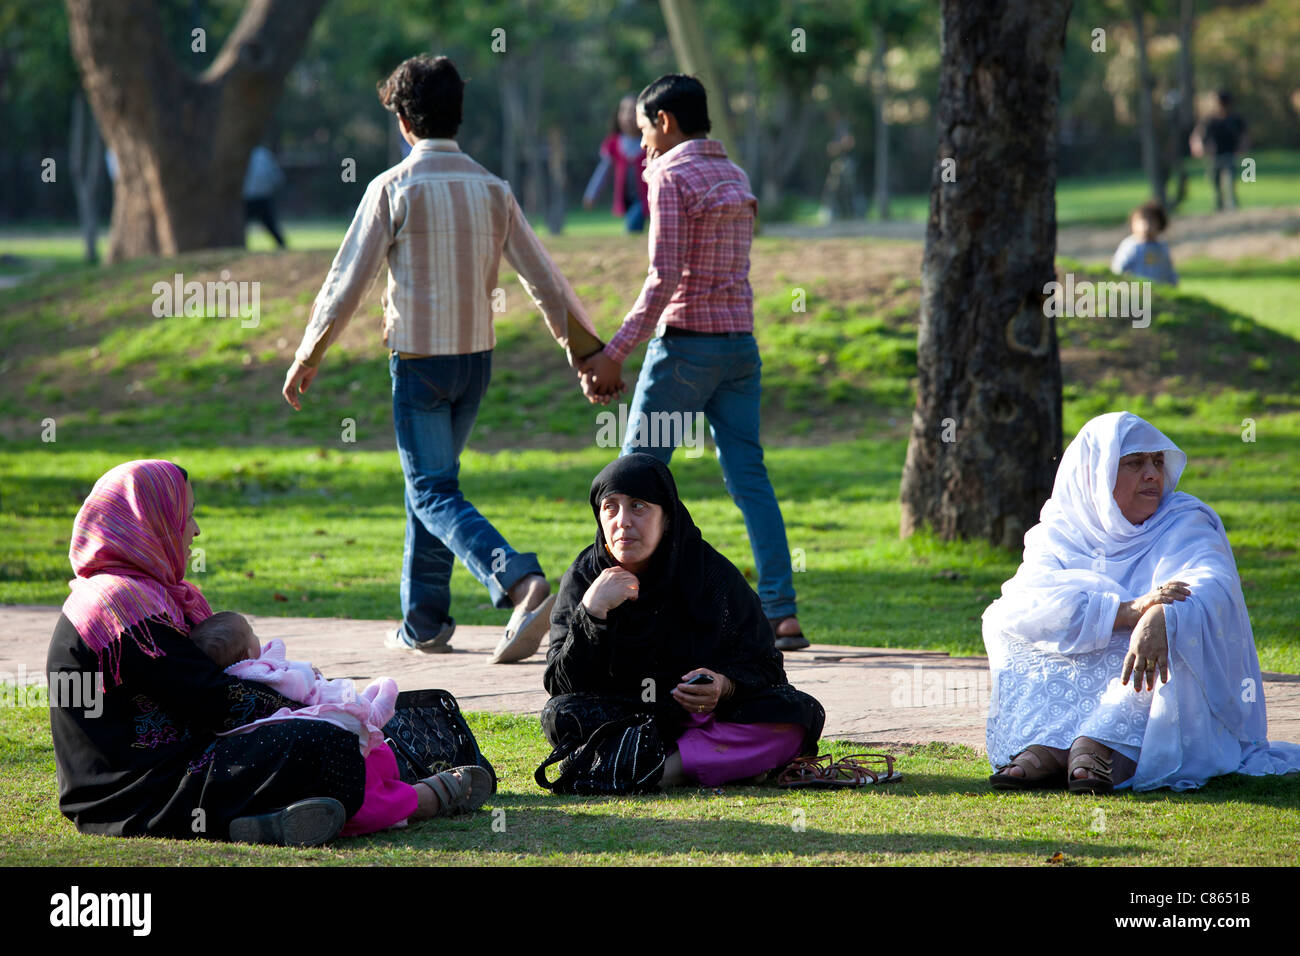 Men holding hands and muslim women with child in gardens at Humayuns Tomb, in New Delhi, India - Stock Image